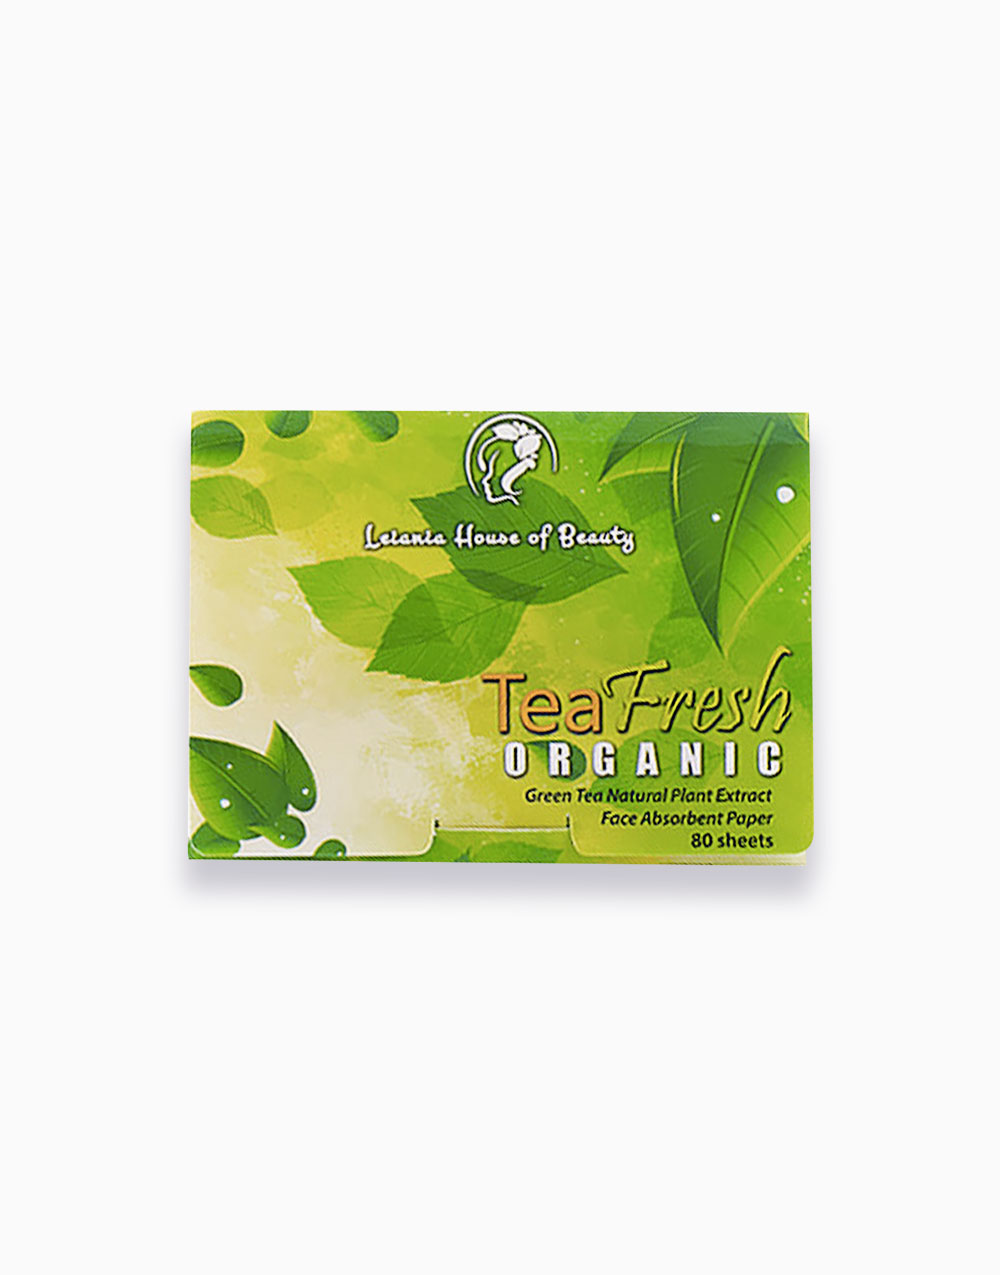 TeaFresh Organic Face Oil Blotting Paper by Leiania House of Beauty